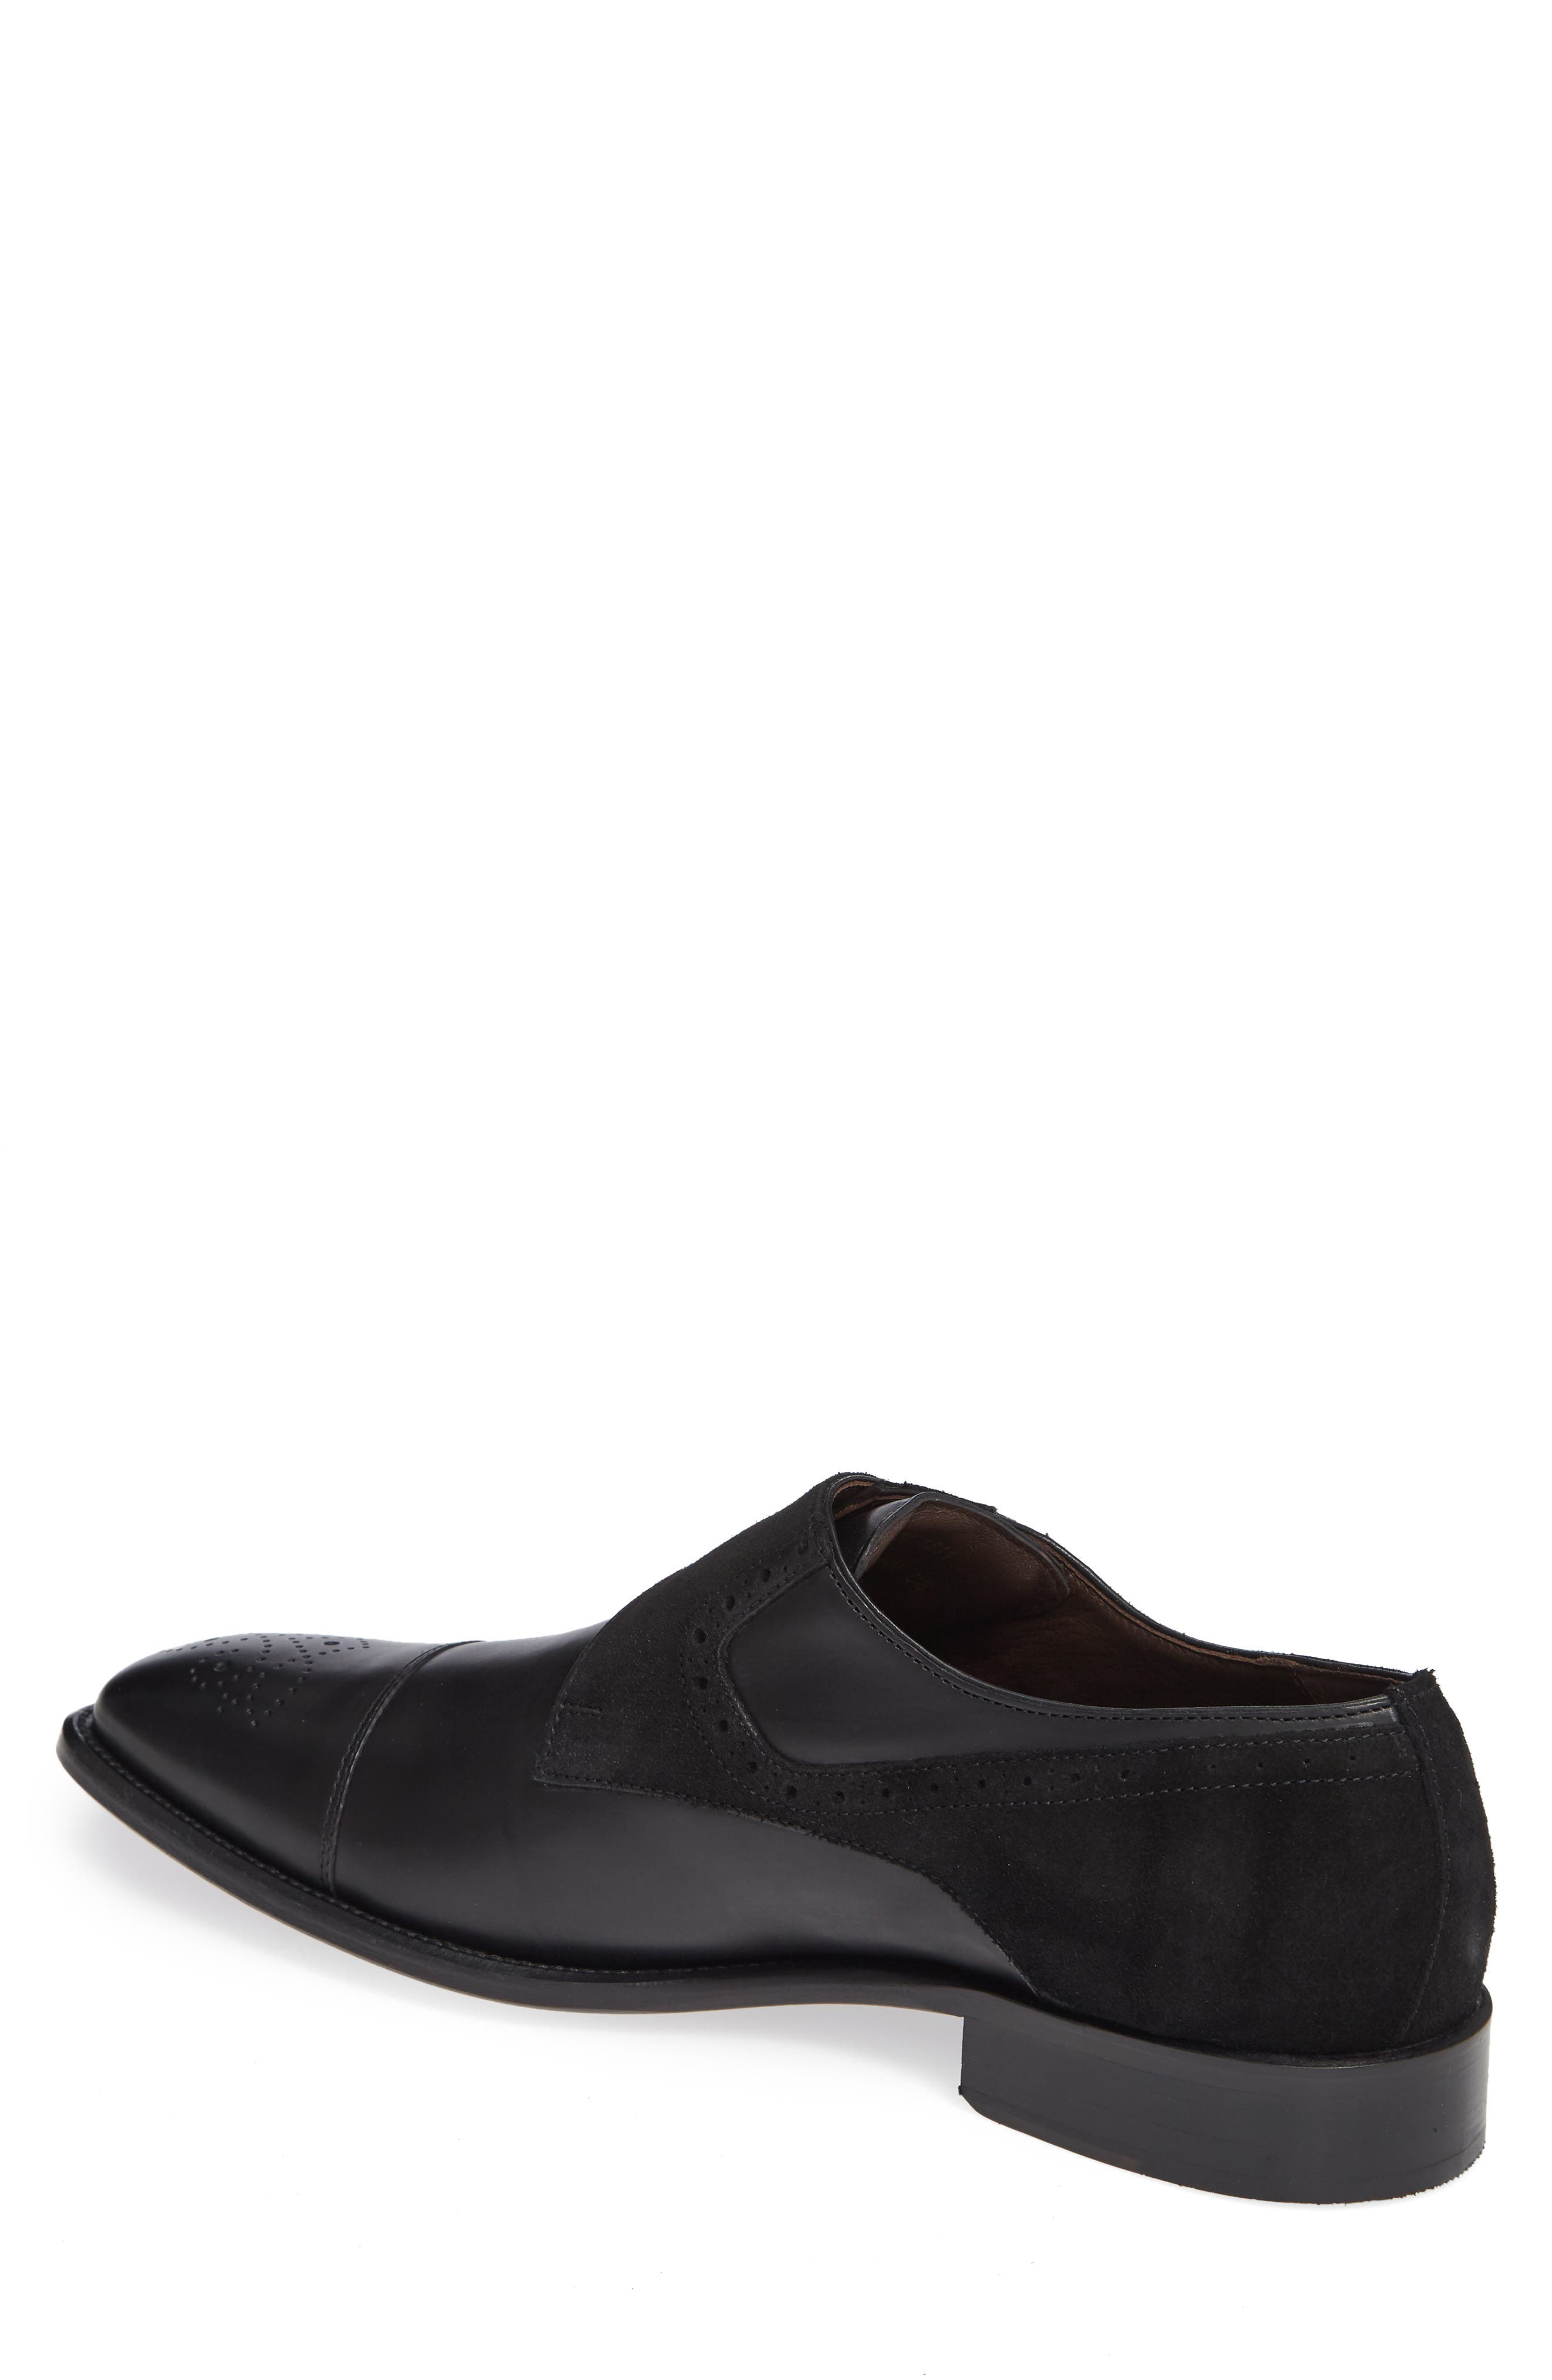 Maxwell Monk Shoe,                             Alternate thumbnail 2, color,                             BLACK SUEDE